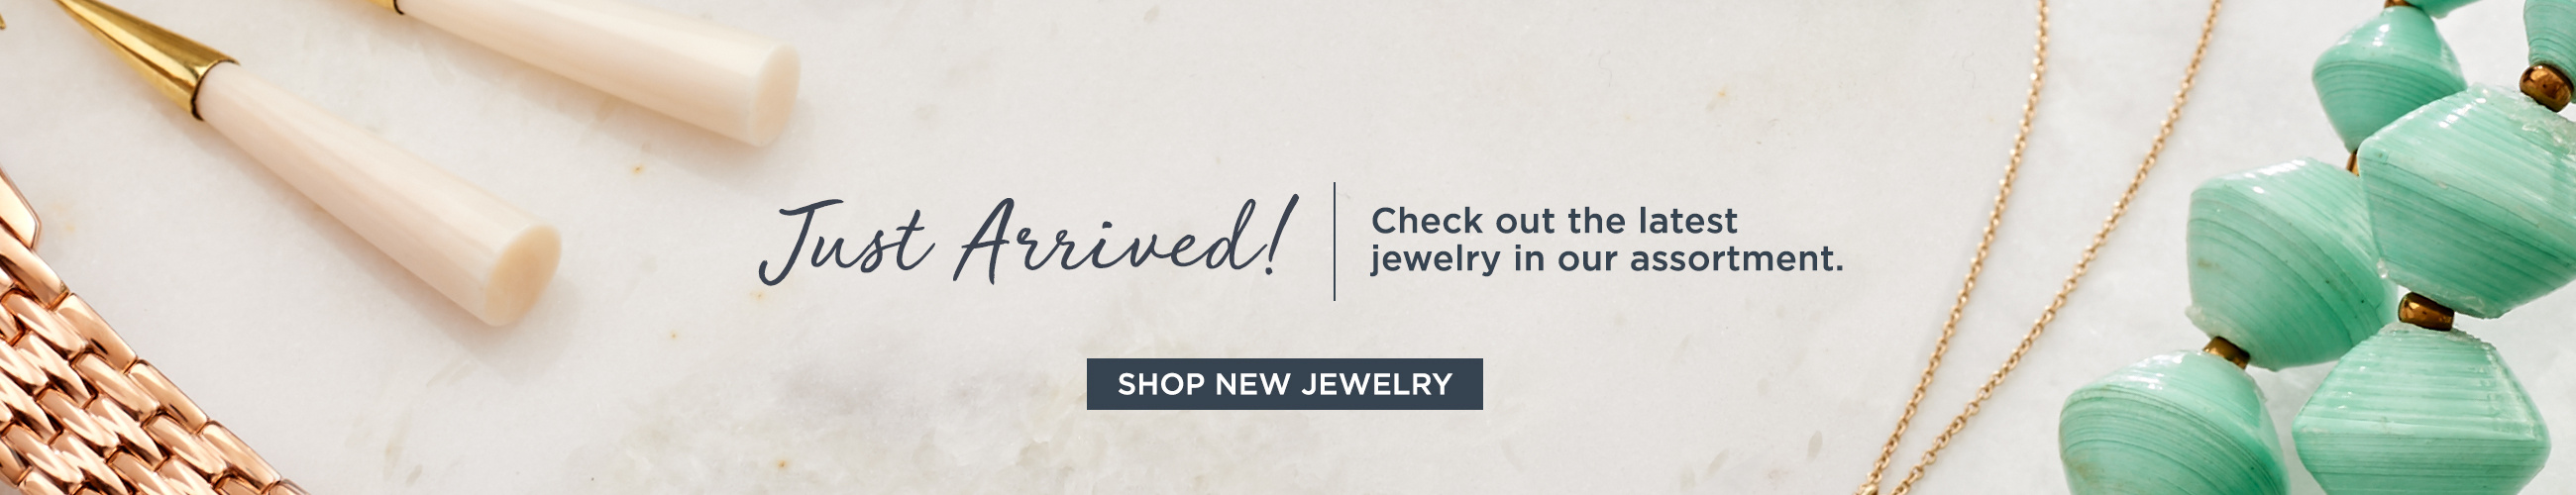 Just Arrived! Check out the latest jewelry in our assortment.